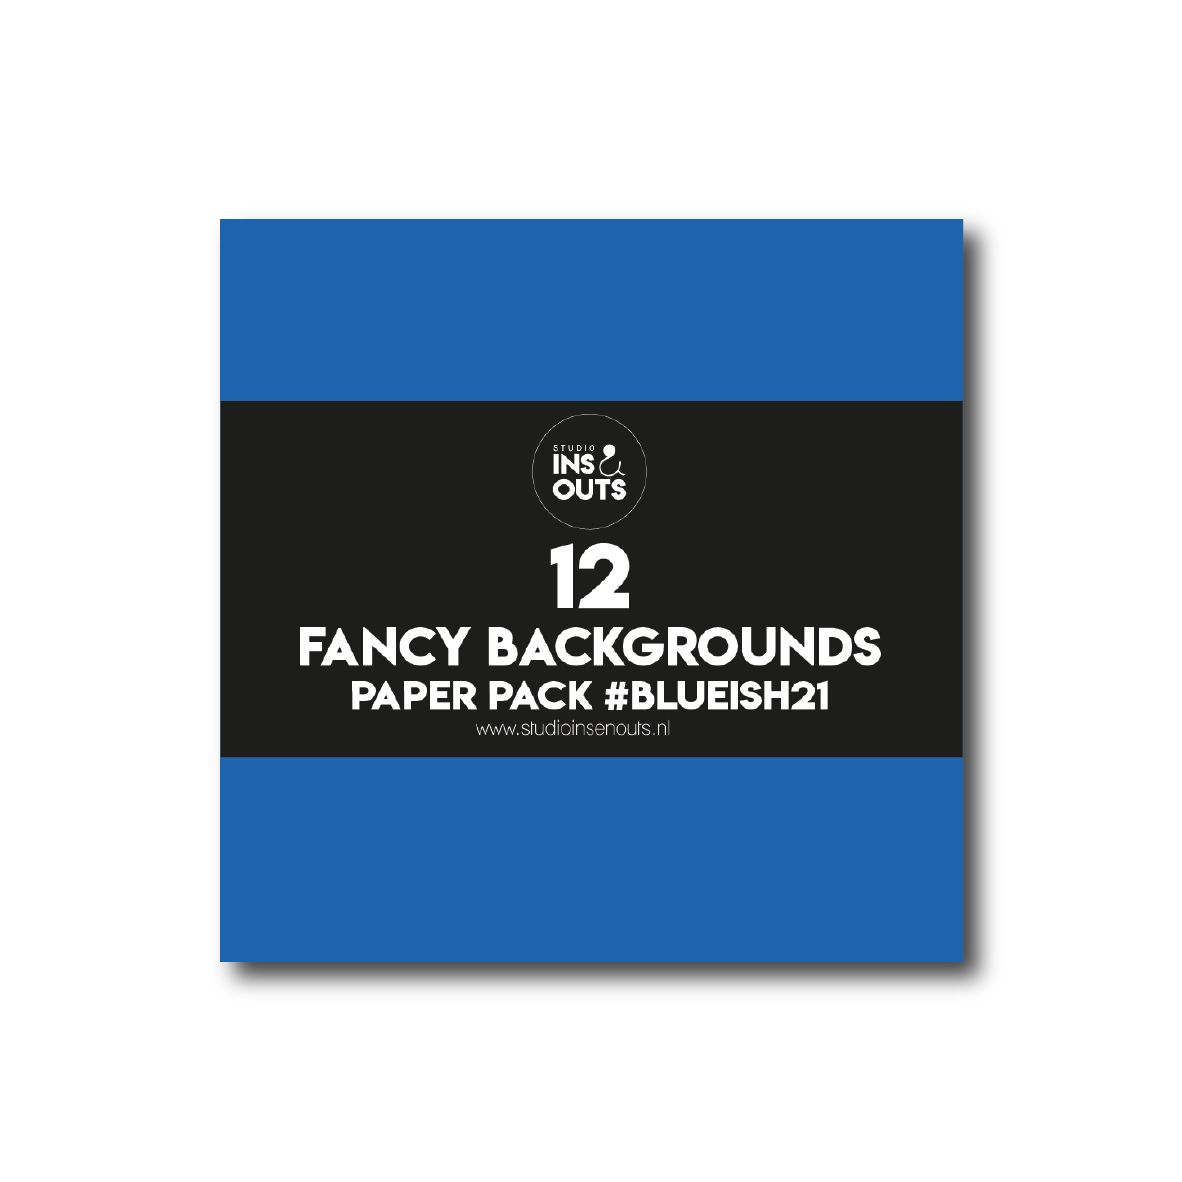 Paper Pack BLUEISH21